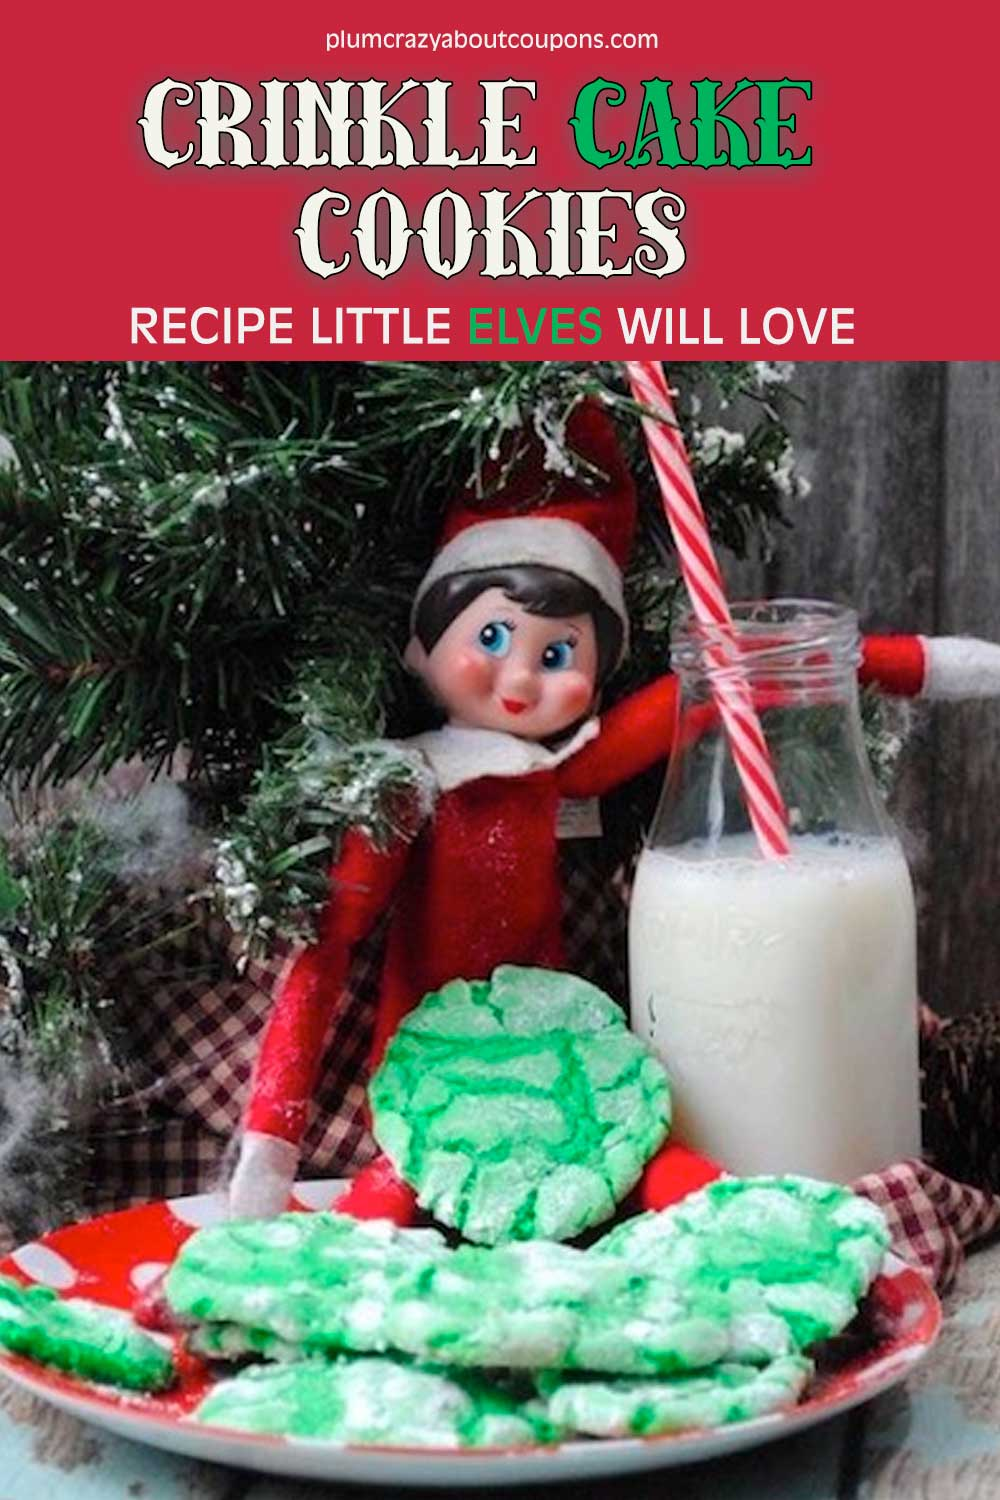 cake mix crinkle cookies recipe.